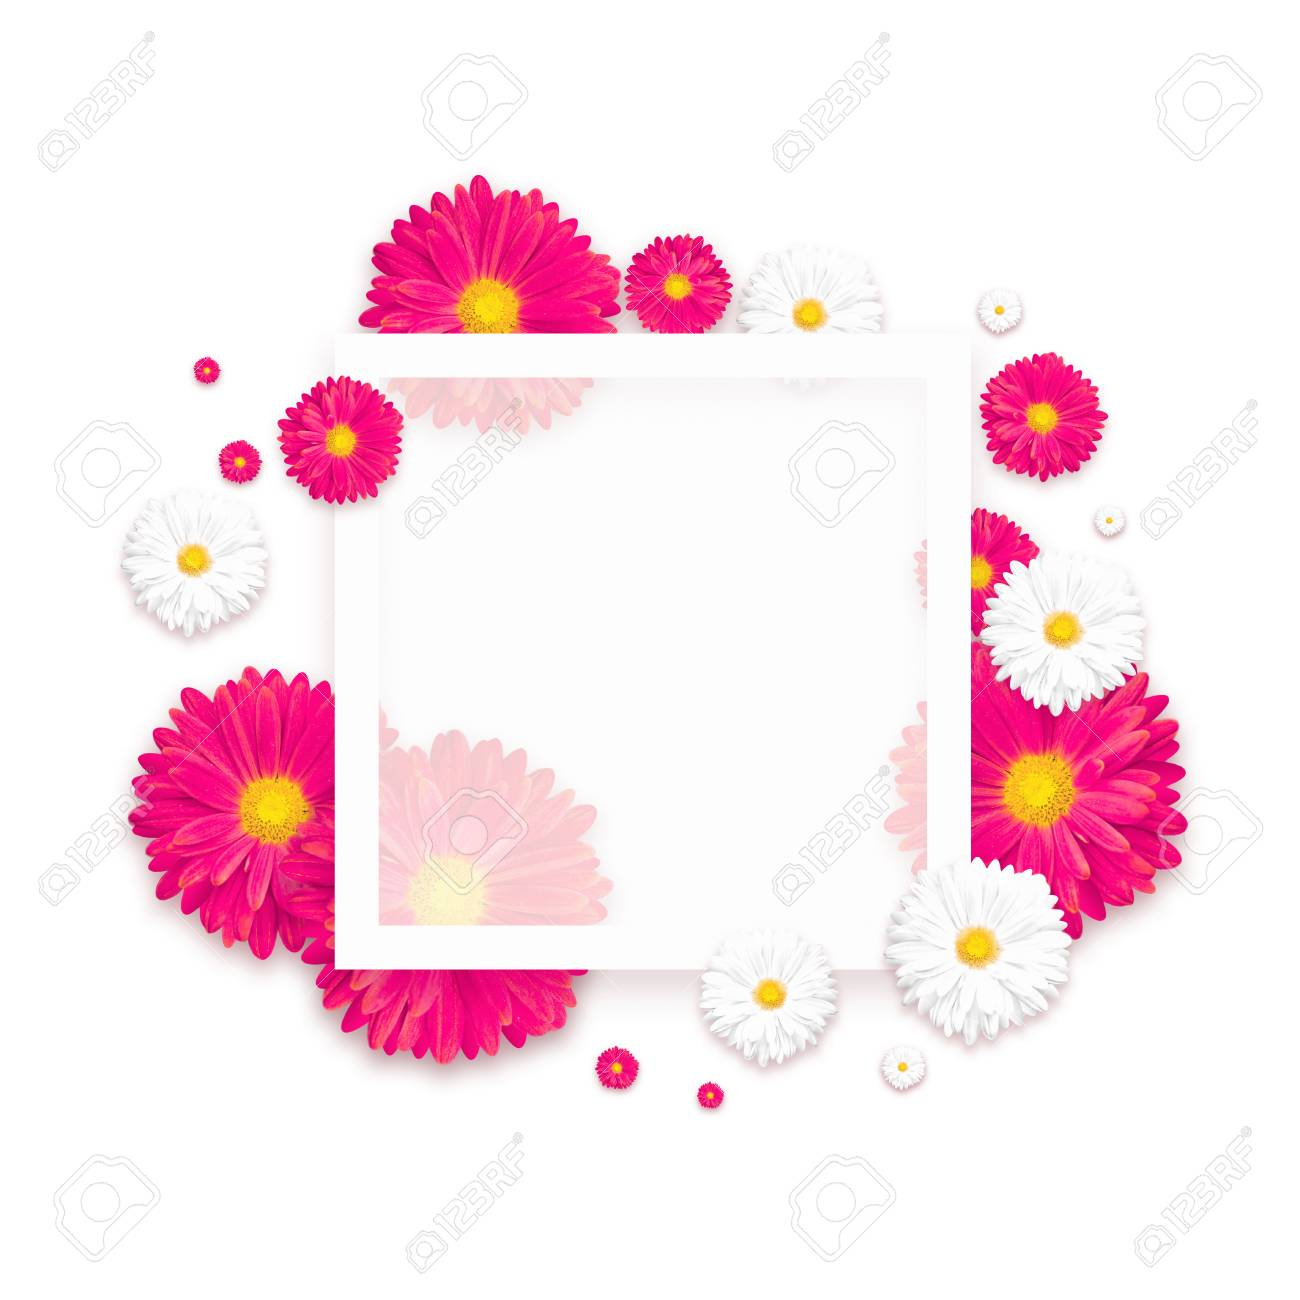 White Background With Beautiful Colorful Flower Wallpaper Flyers